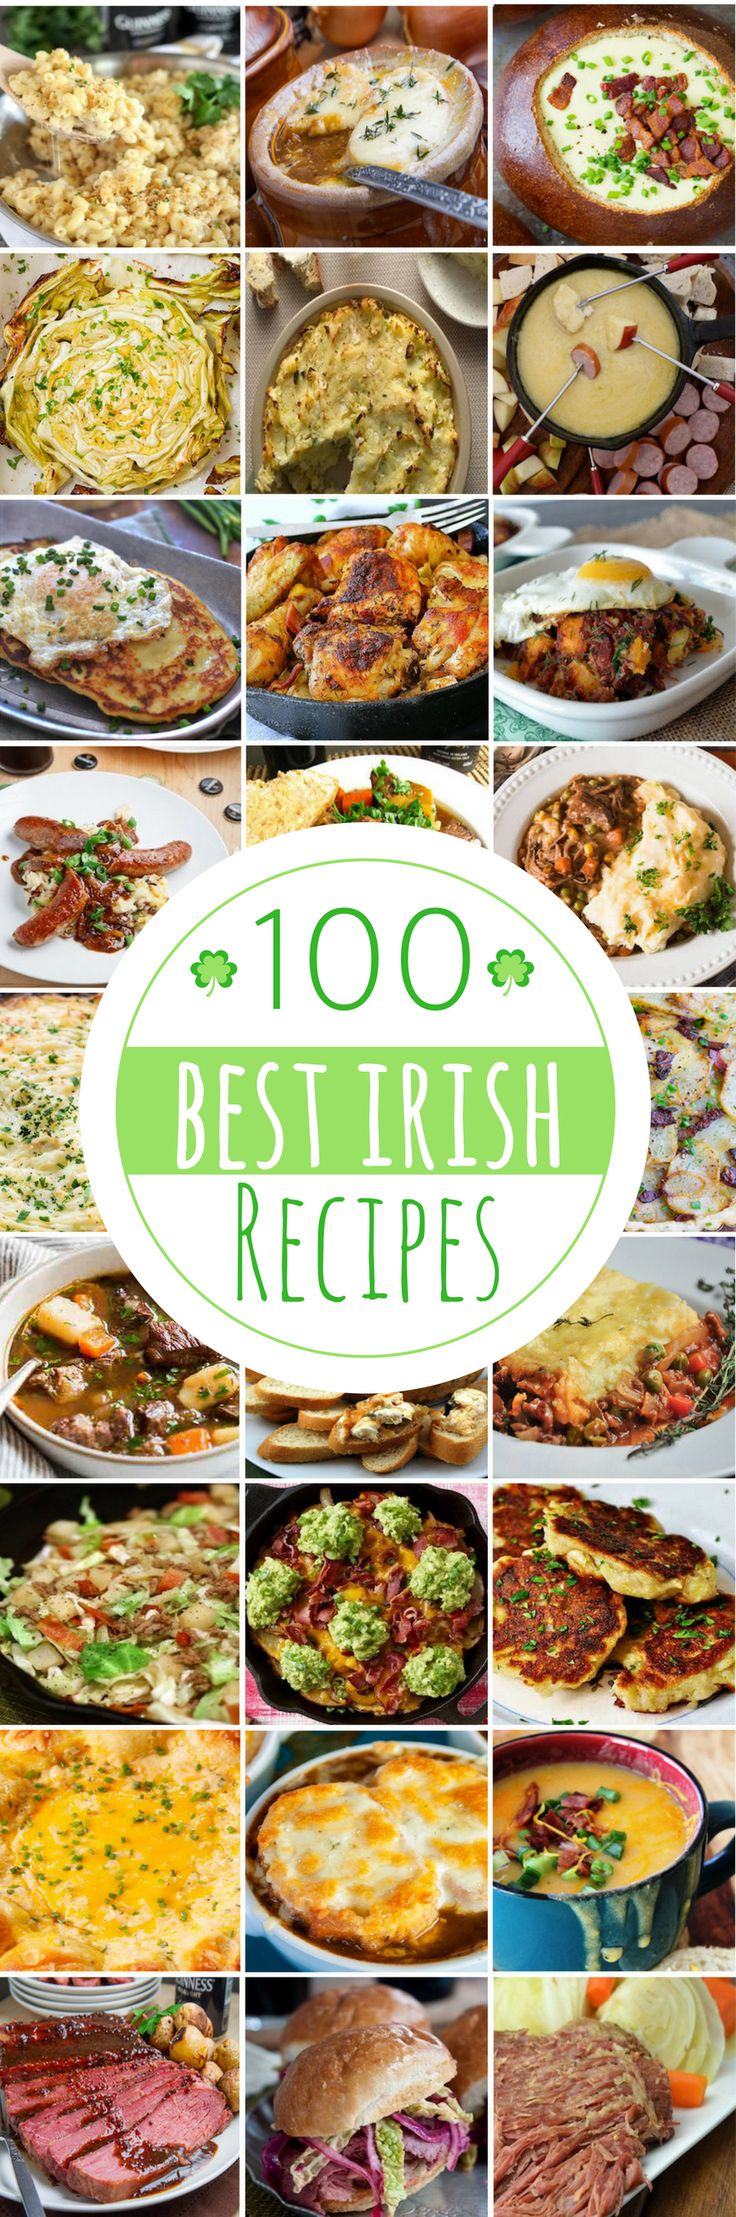 100 Irish Recipes for St Patrick's Day